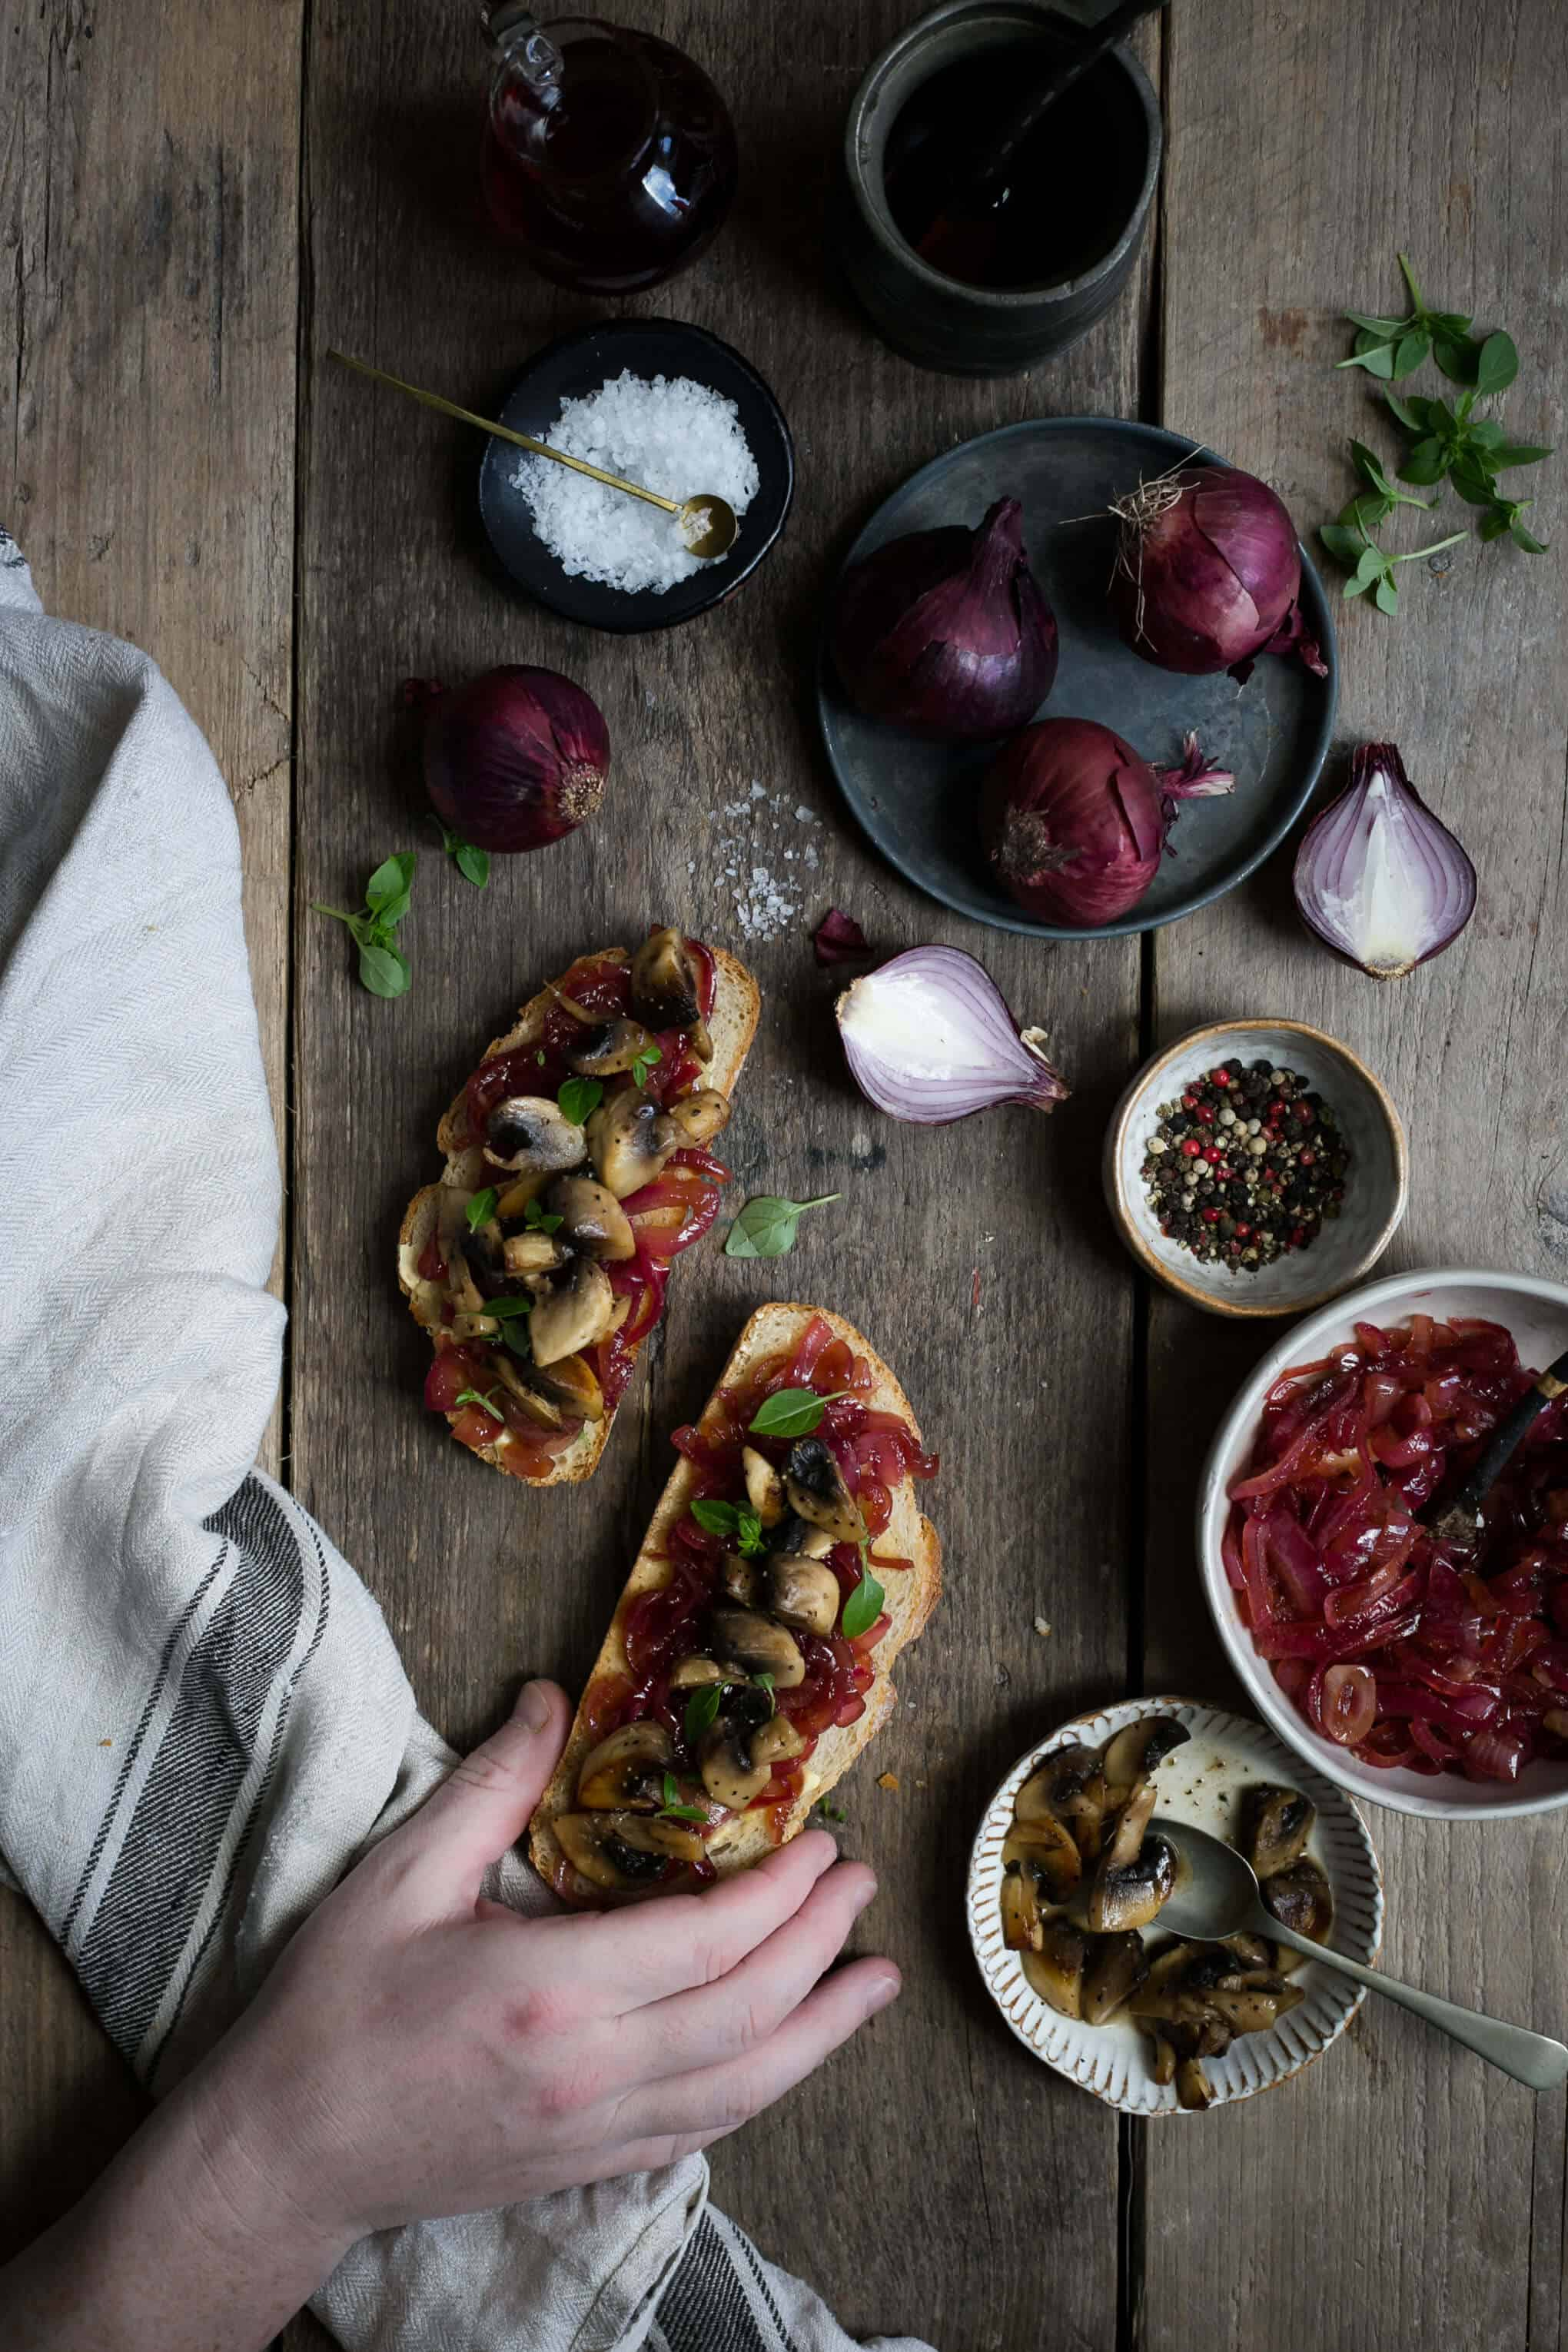 Red onion jam with mushrooms on toast | via @annabanana.co